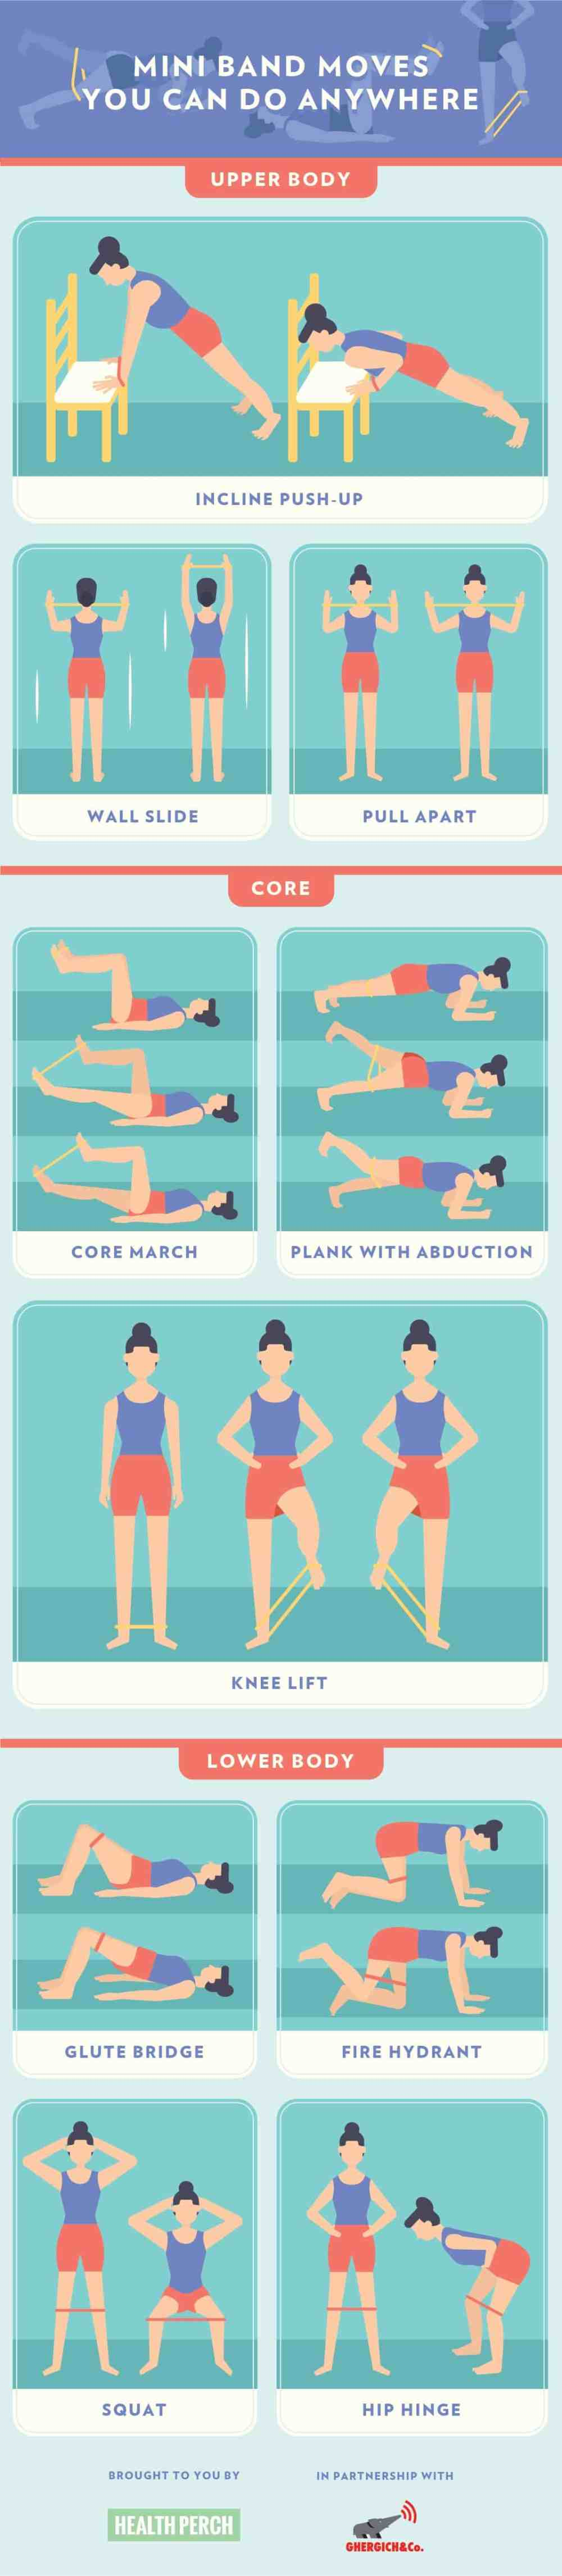 10 Mini Band Moves You Can Do Anywhere